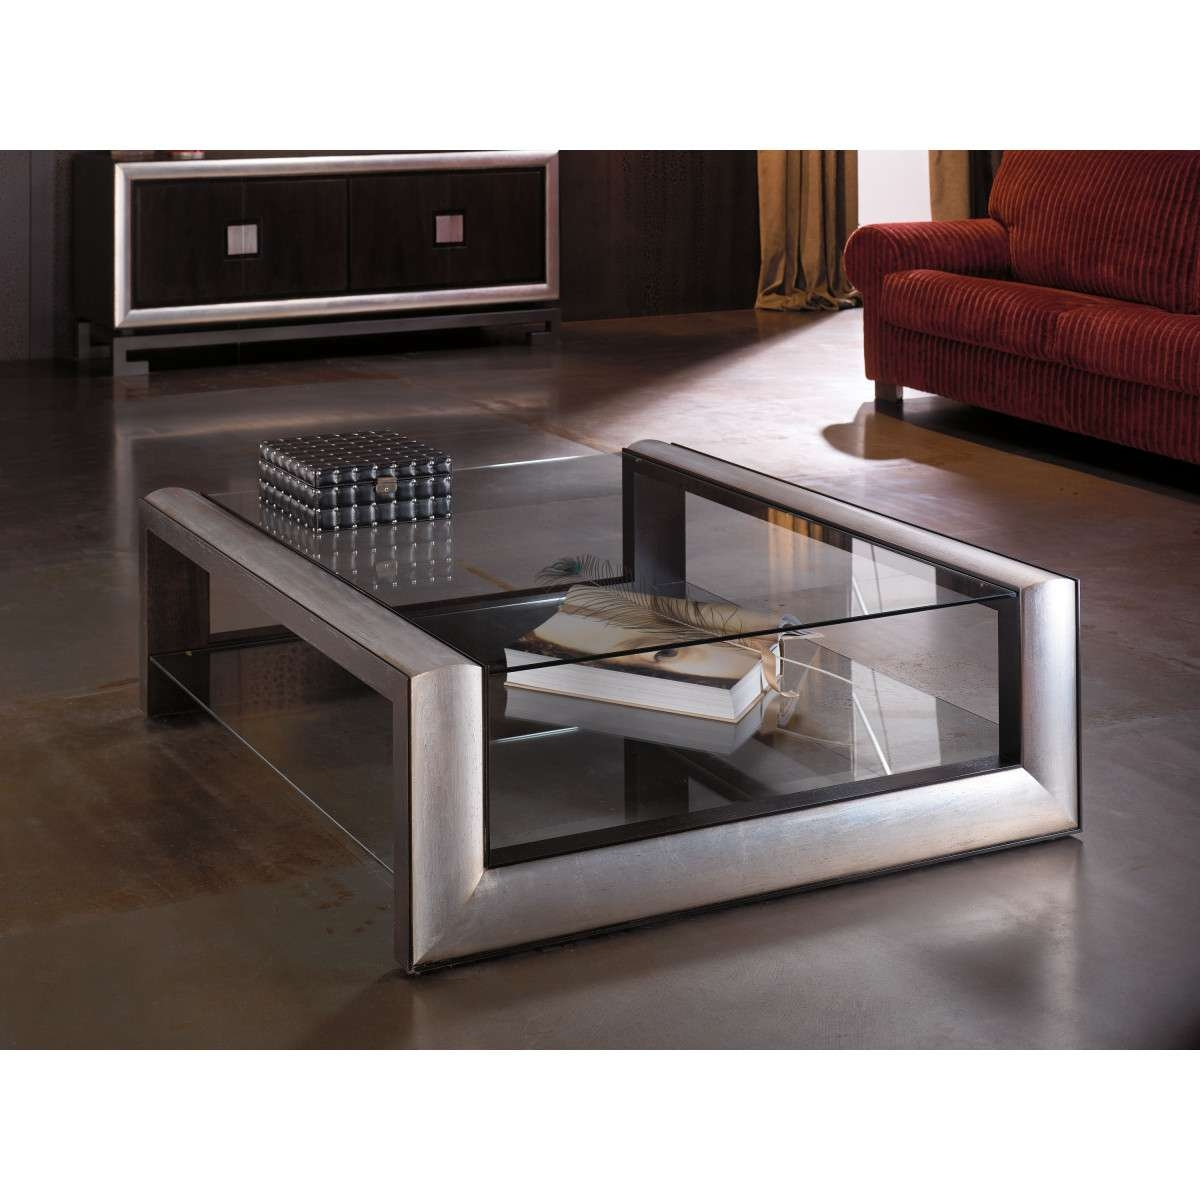 Newest Square Glass Coffee Tables Pertaining To Coffee Table: Awesome Square Glass Coffee Tables 42 Square Glass (View 14 of 20)